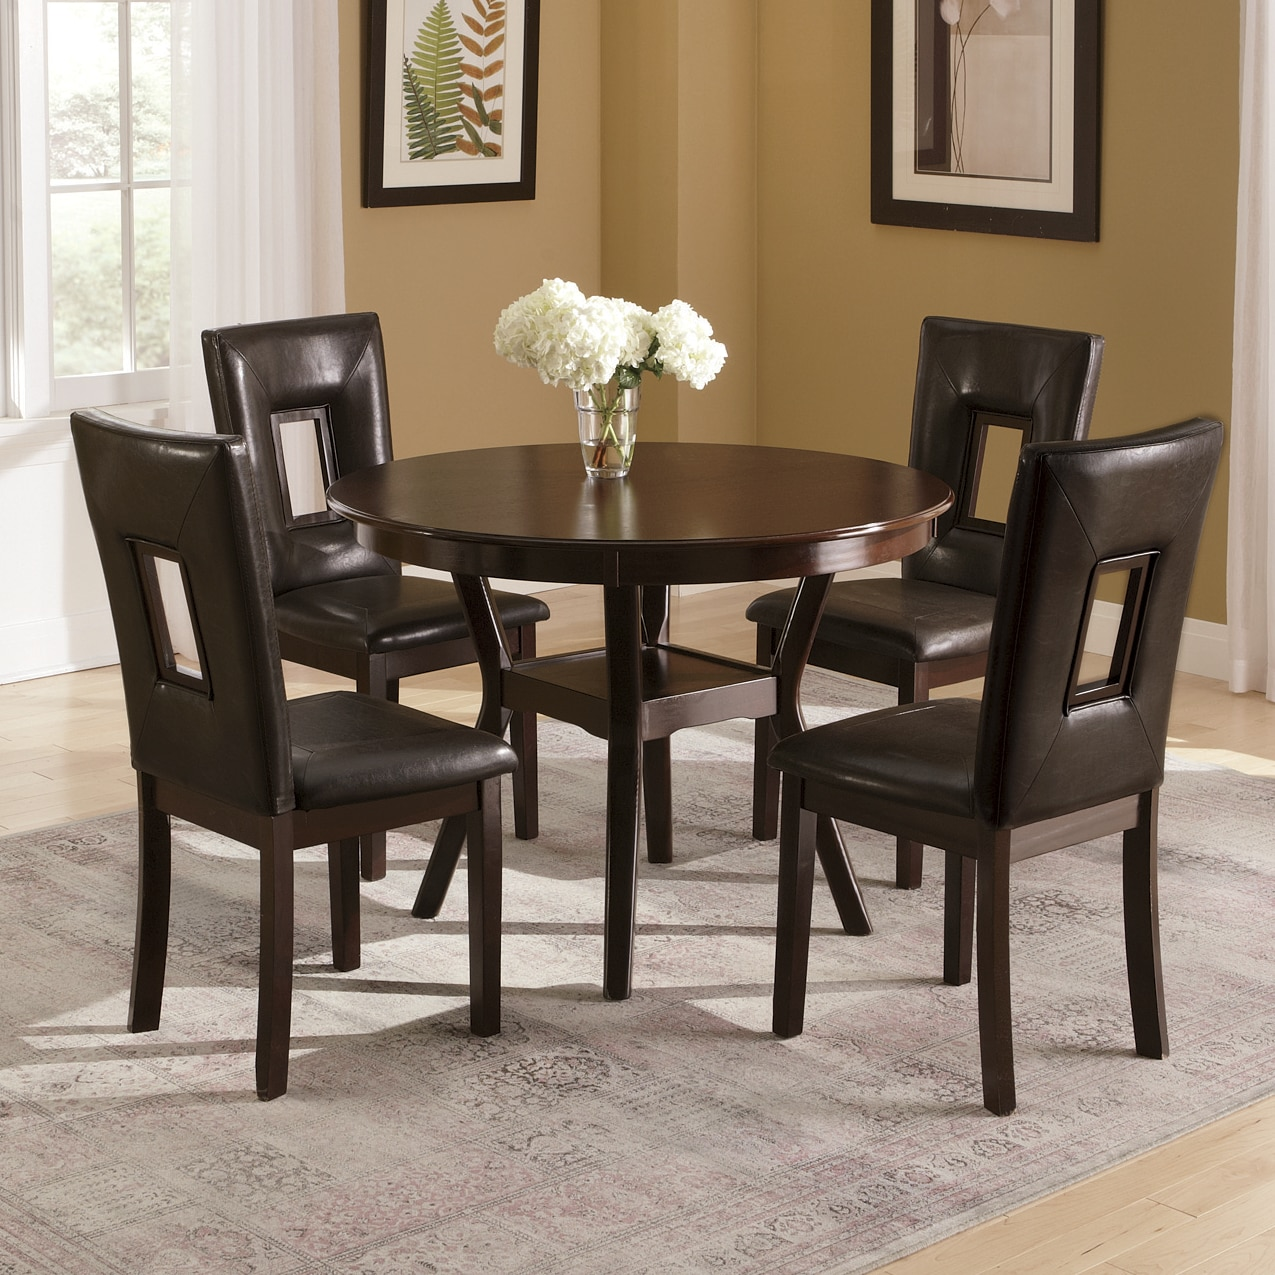 chairs dining table aluminum folding chair sets barstools ginny s manchester round and set of 2 rectangle cutout